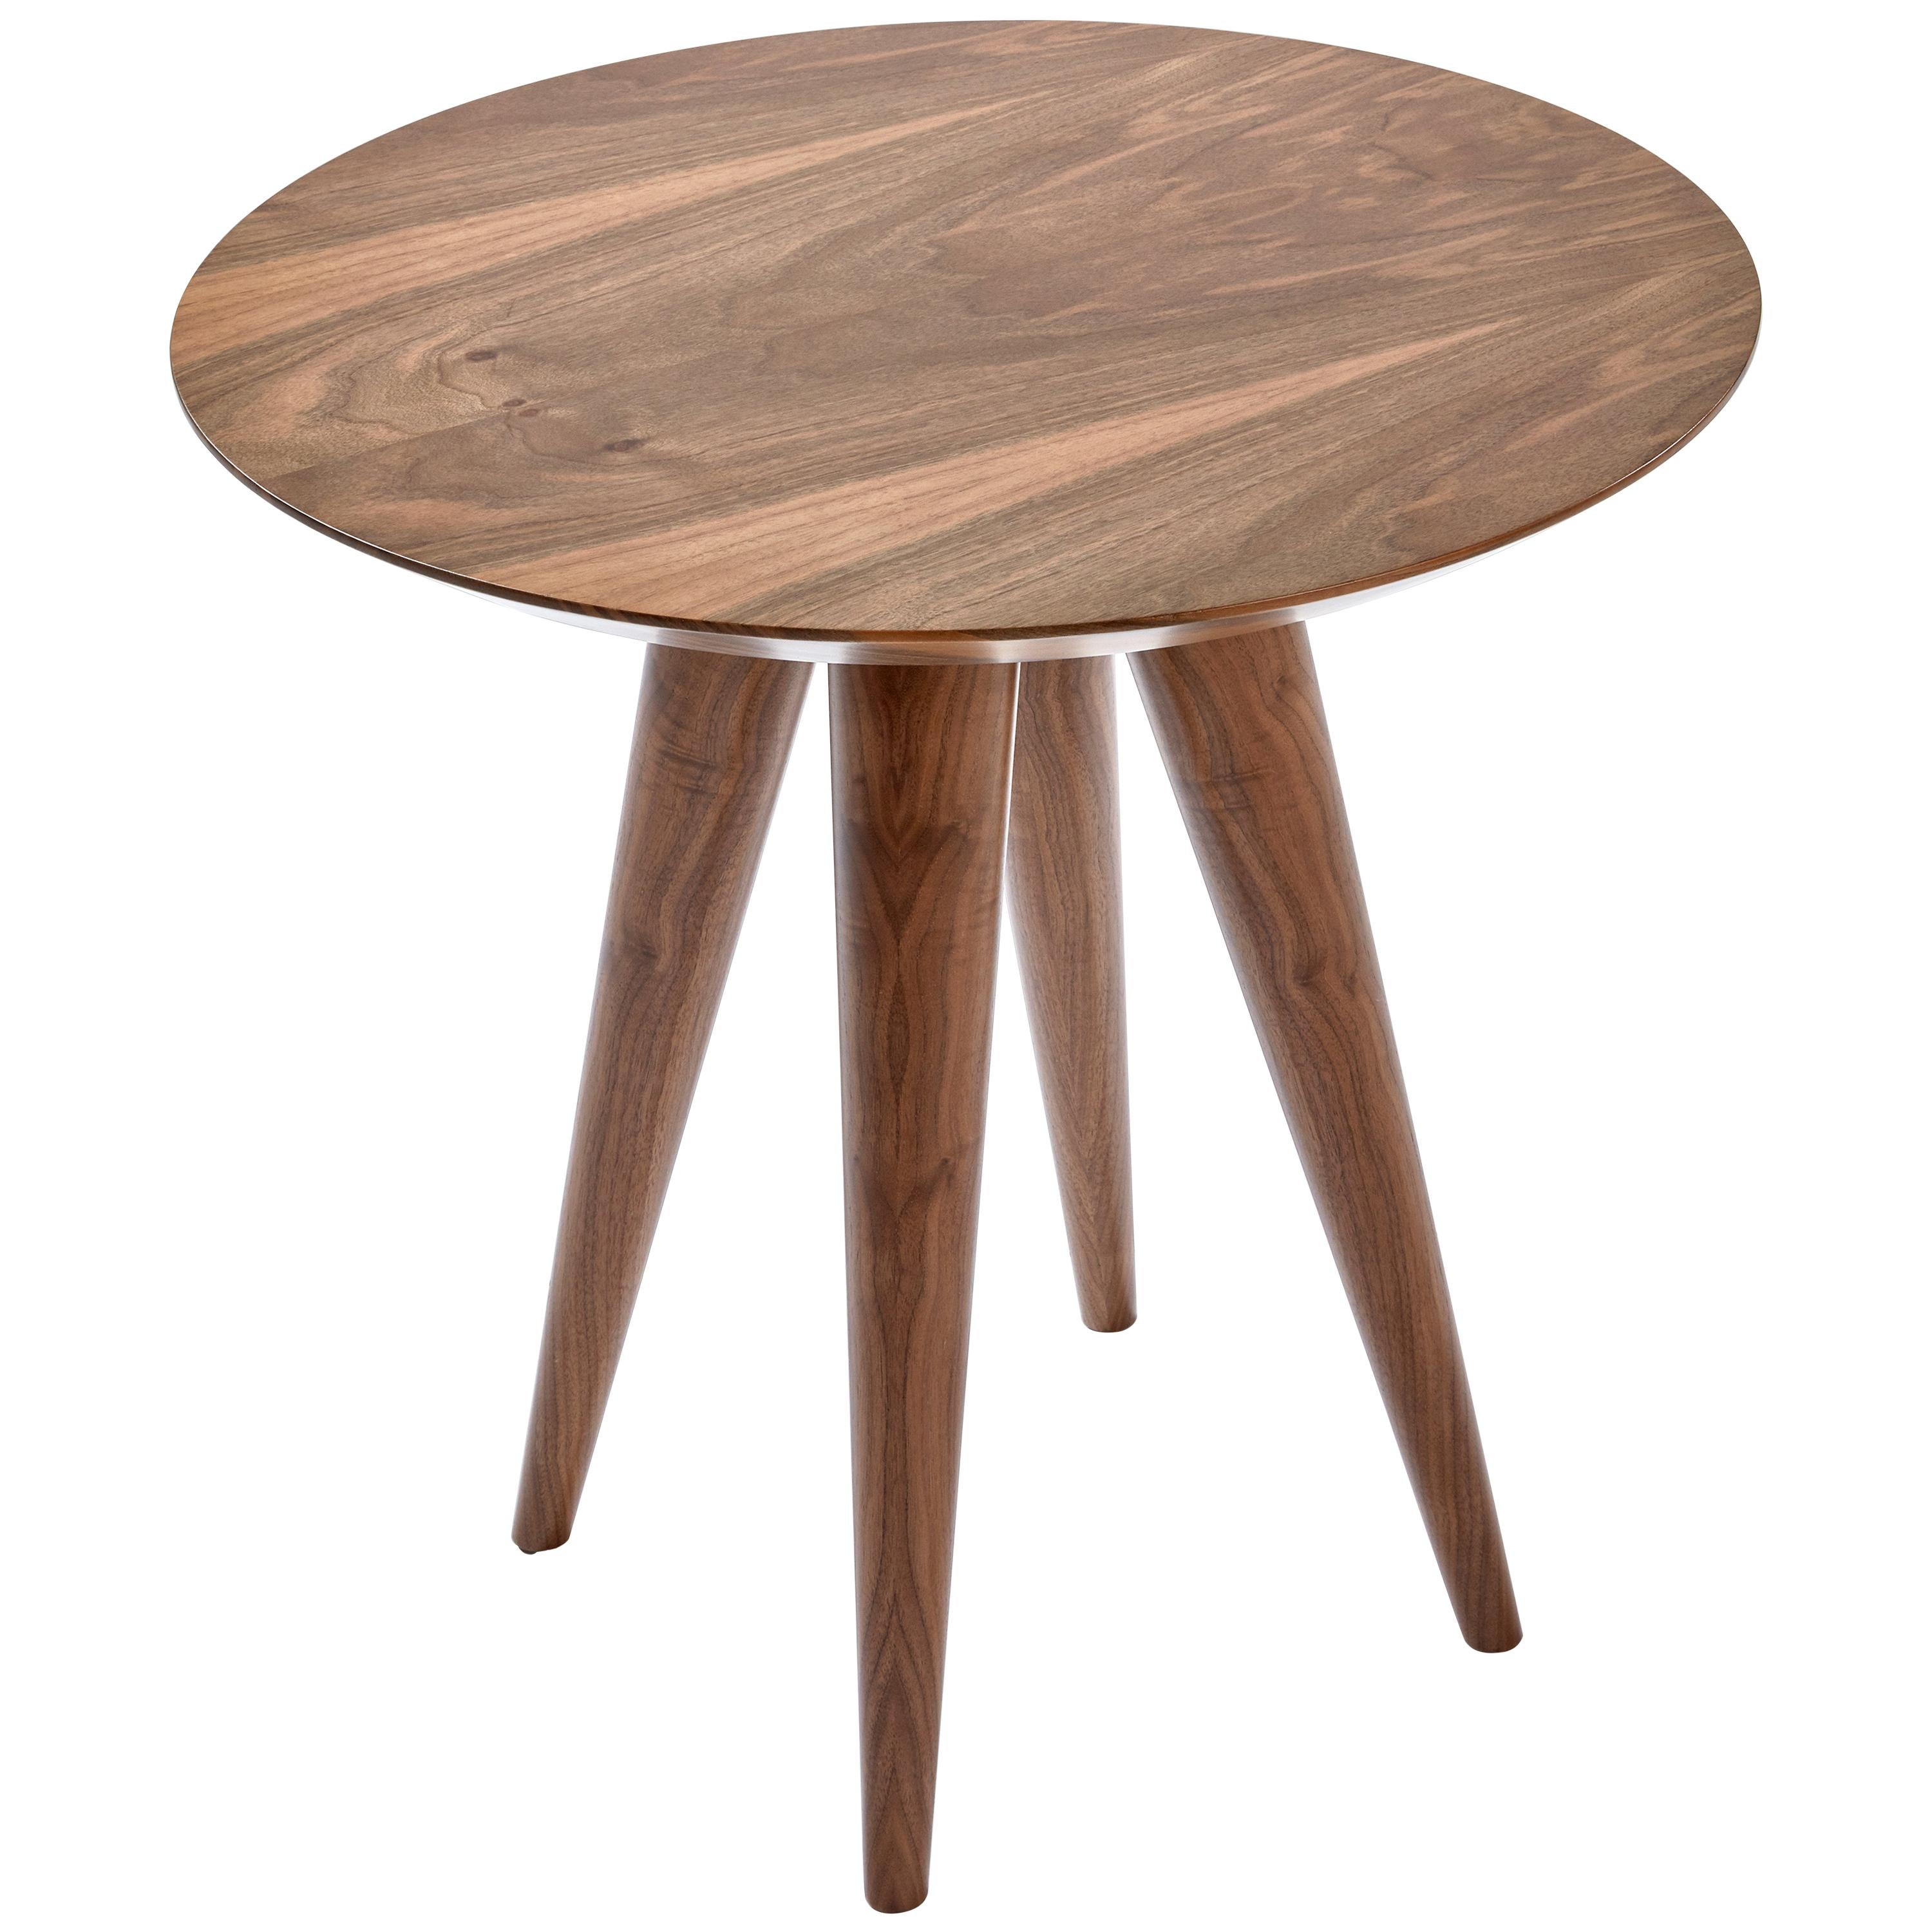 Tombo Table, Solid Walnut Wood Accent Side Table